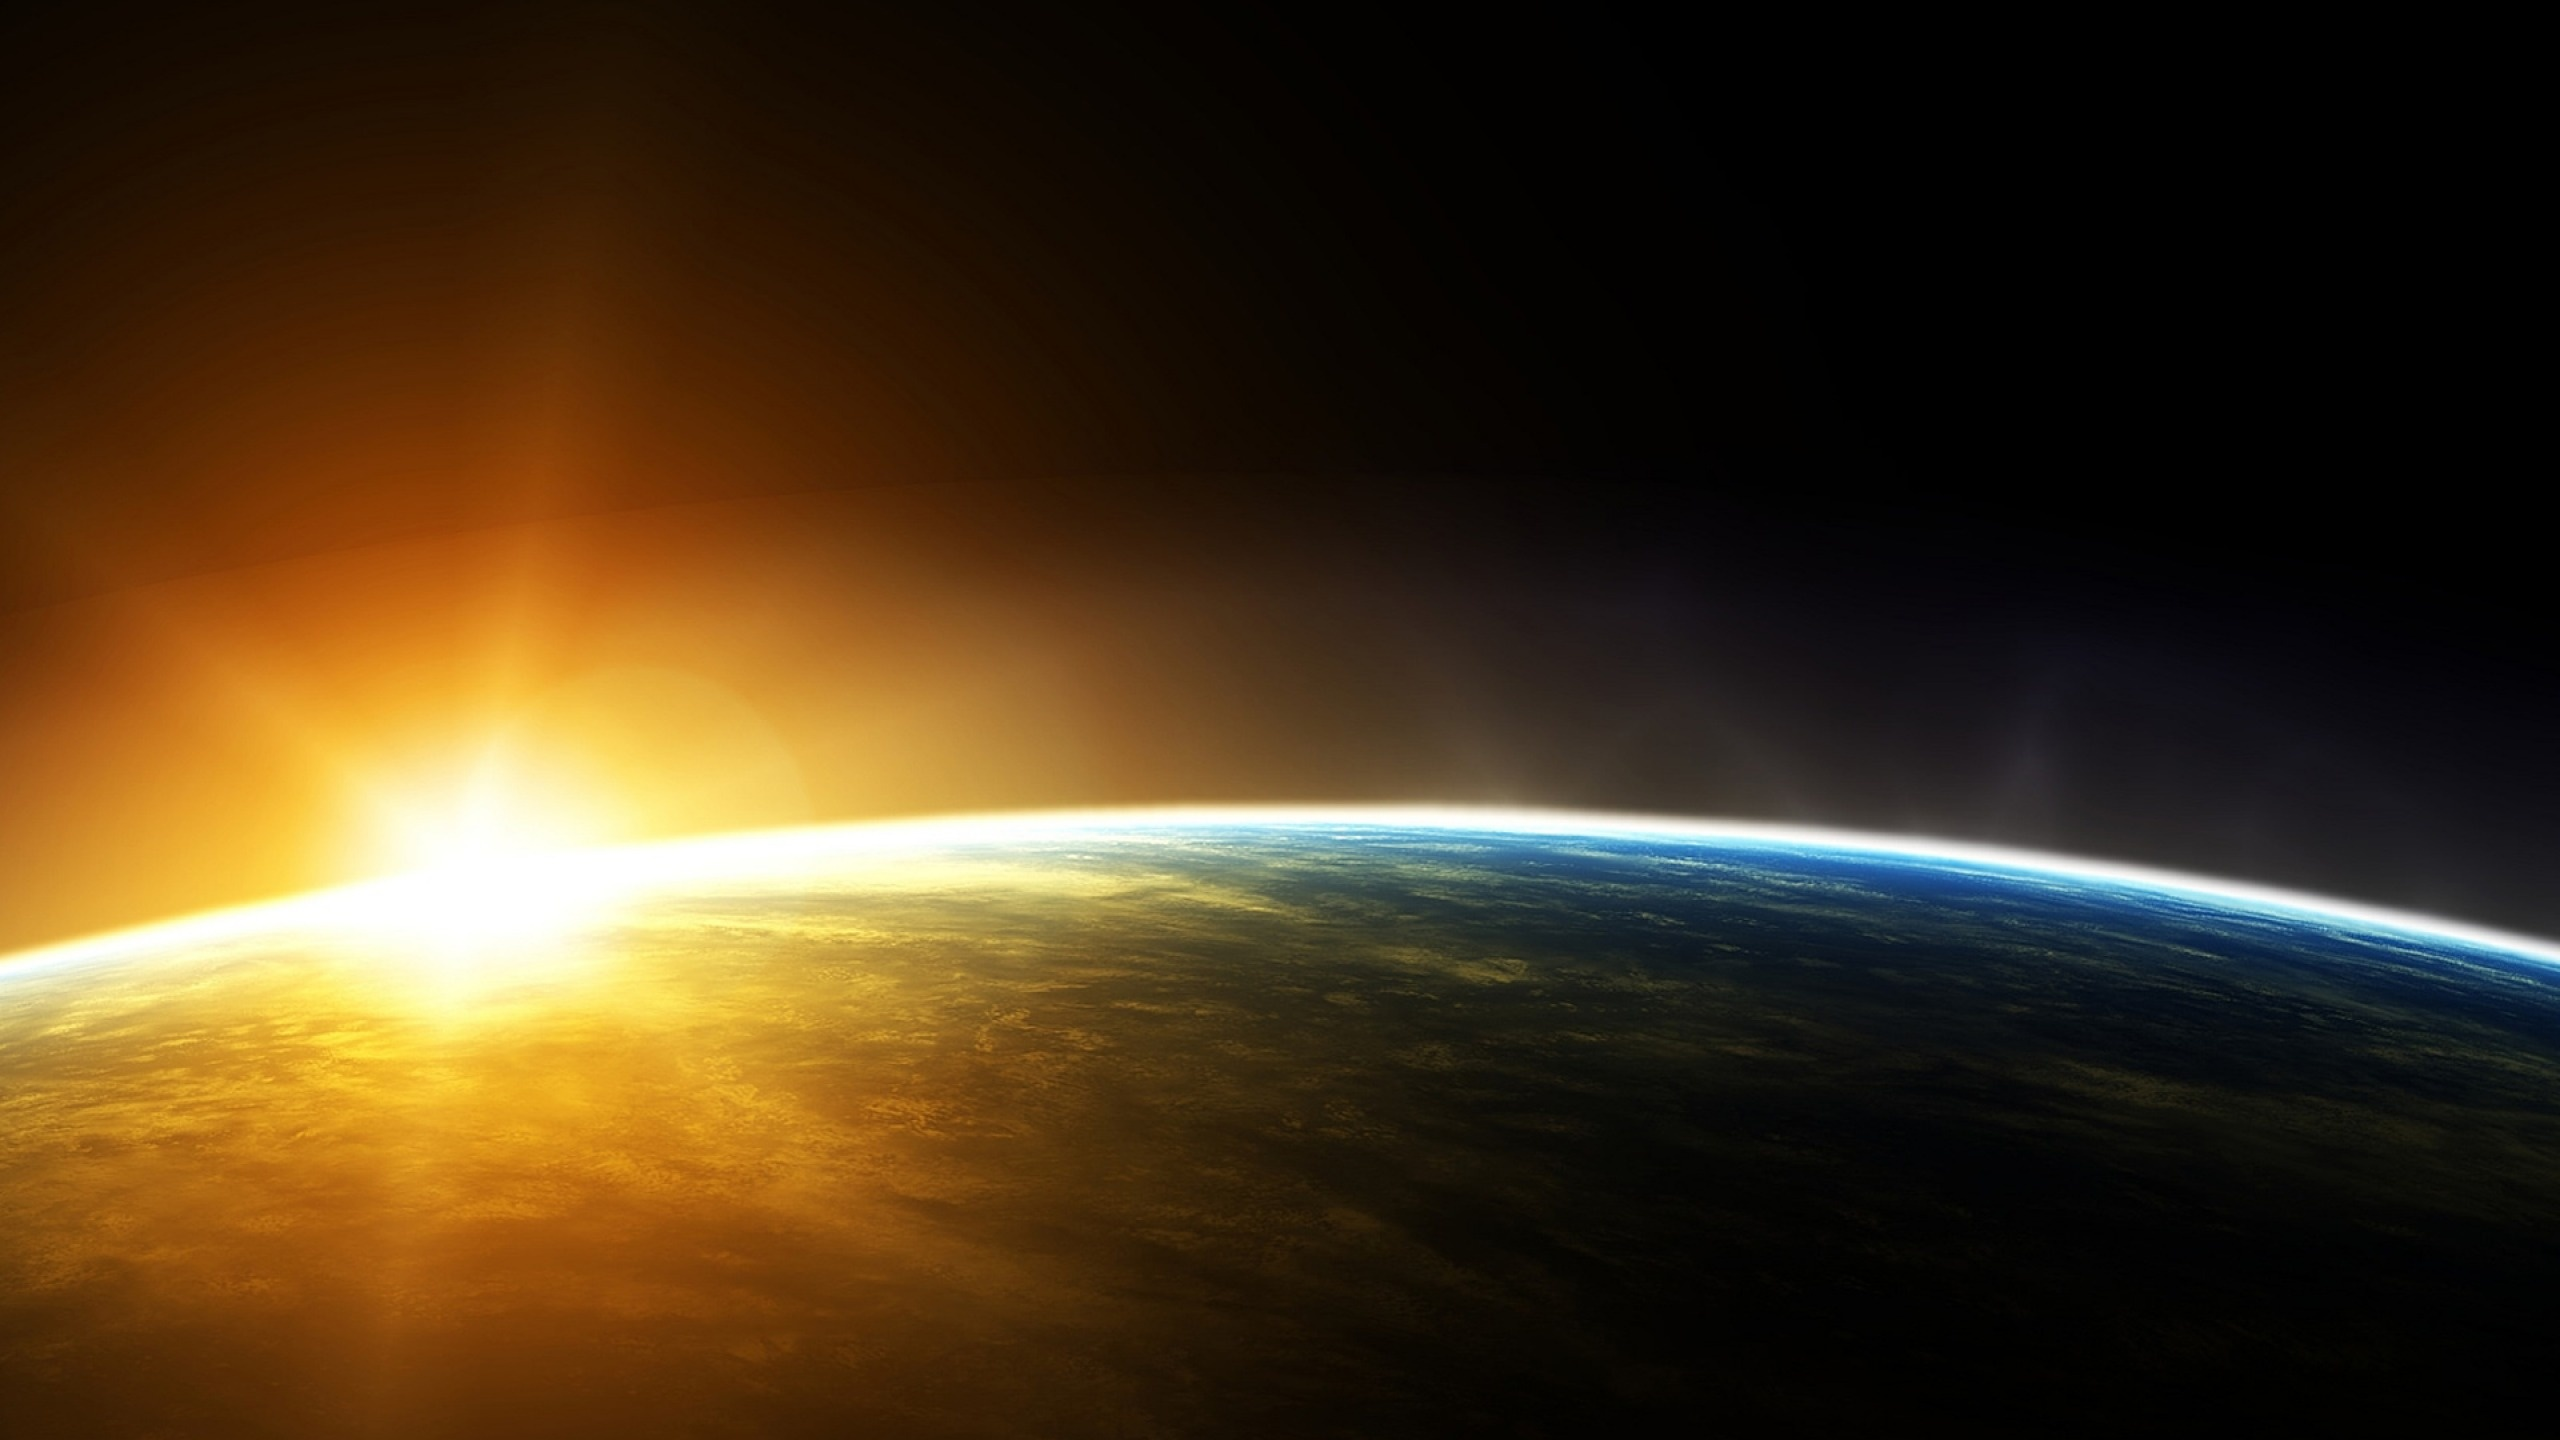 Outer space sunrise wallpapers wallpaper desktop - Space 2560 x 1440 ...